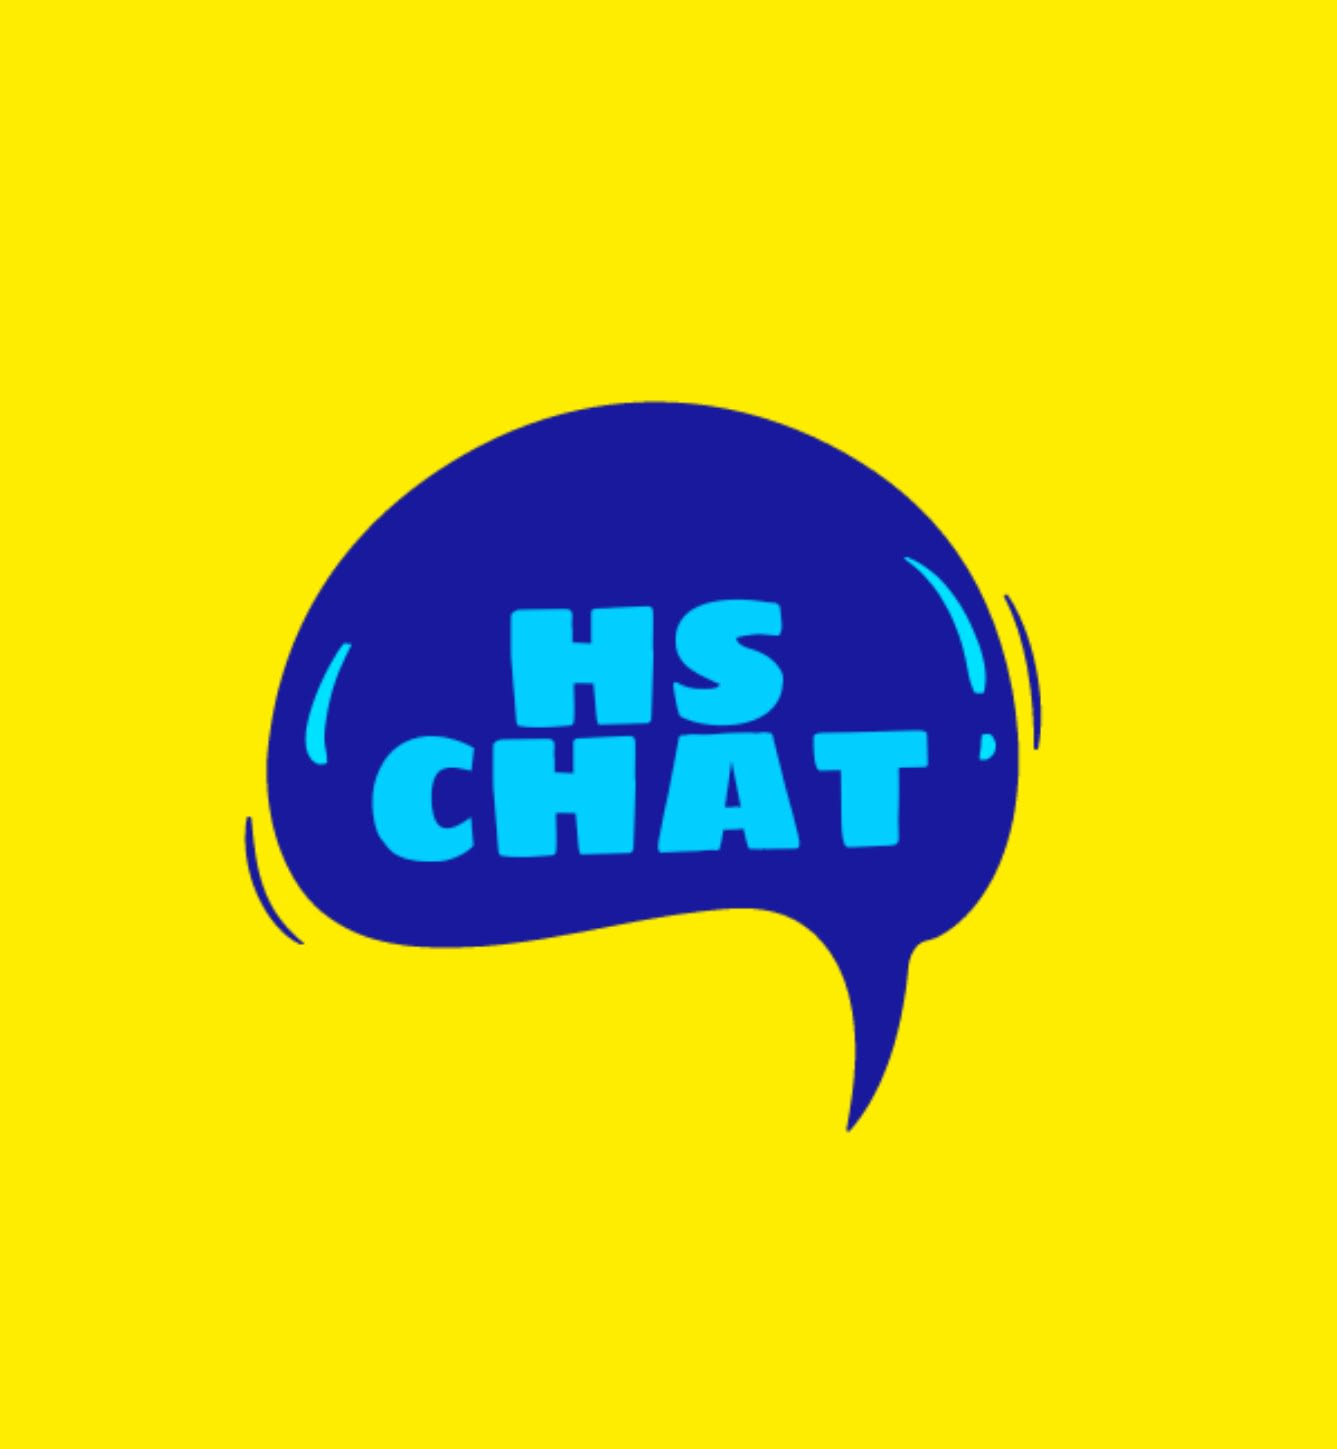 HS Chat